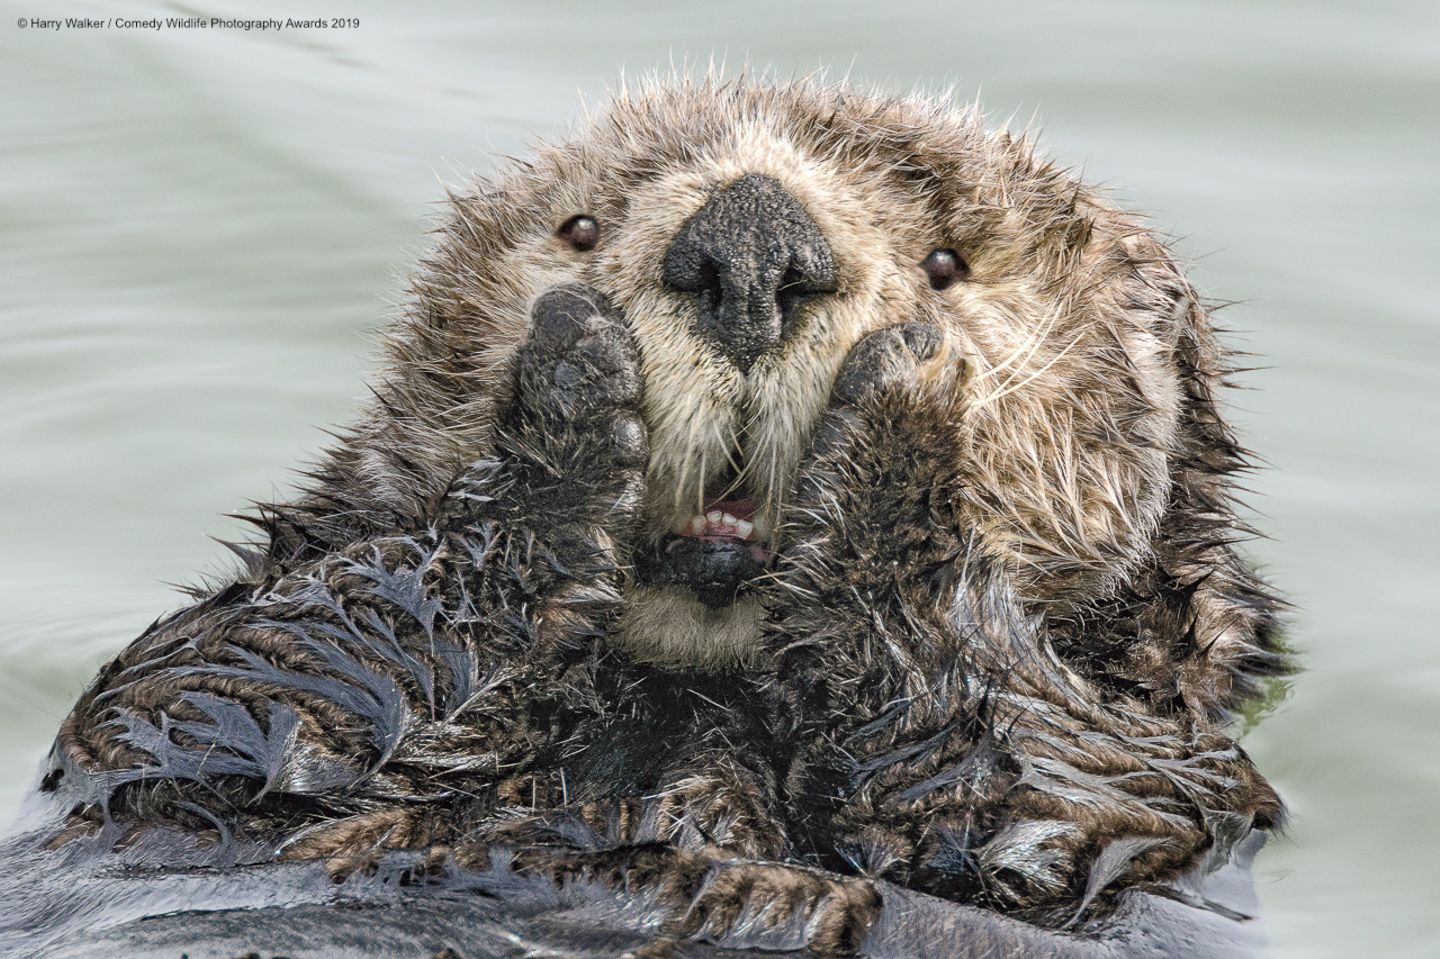 Comedy Wildlife Awards 2019: Otter im Wasser